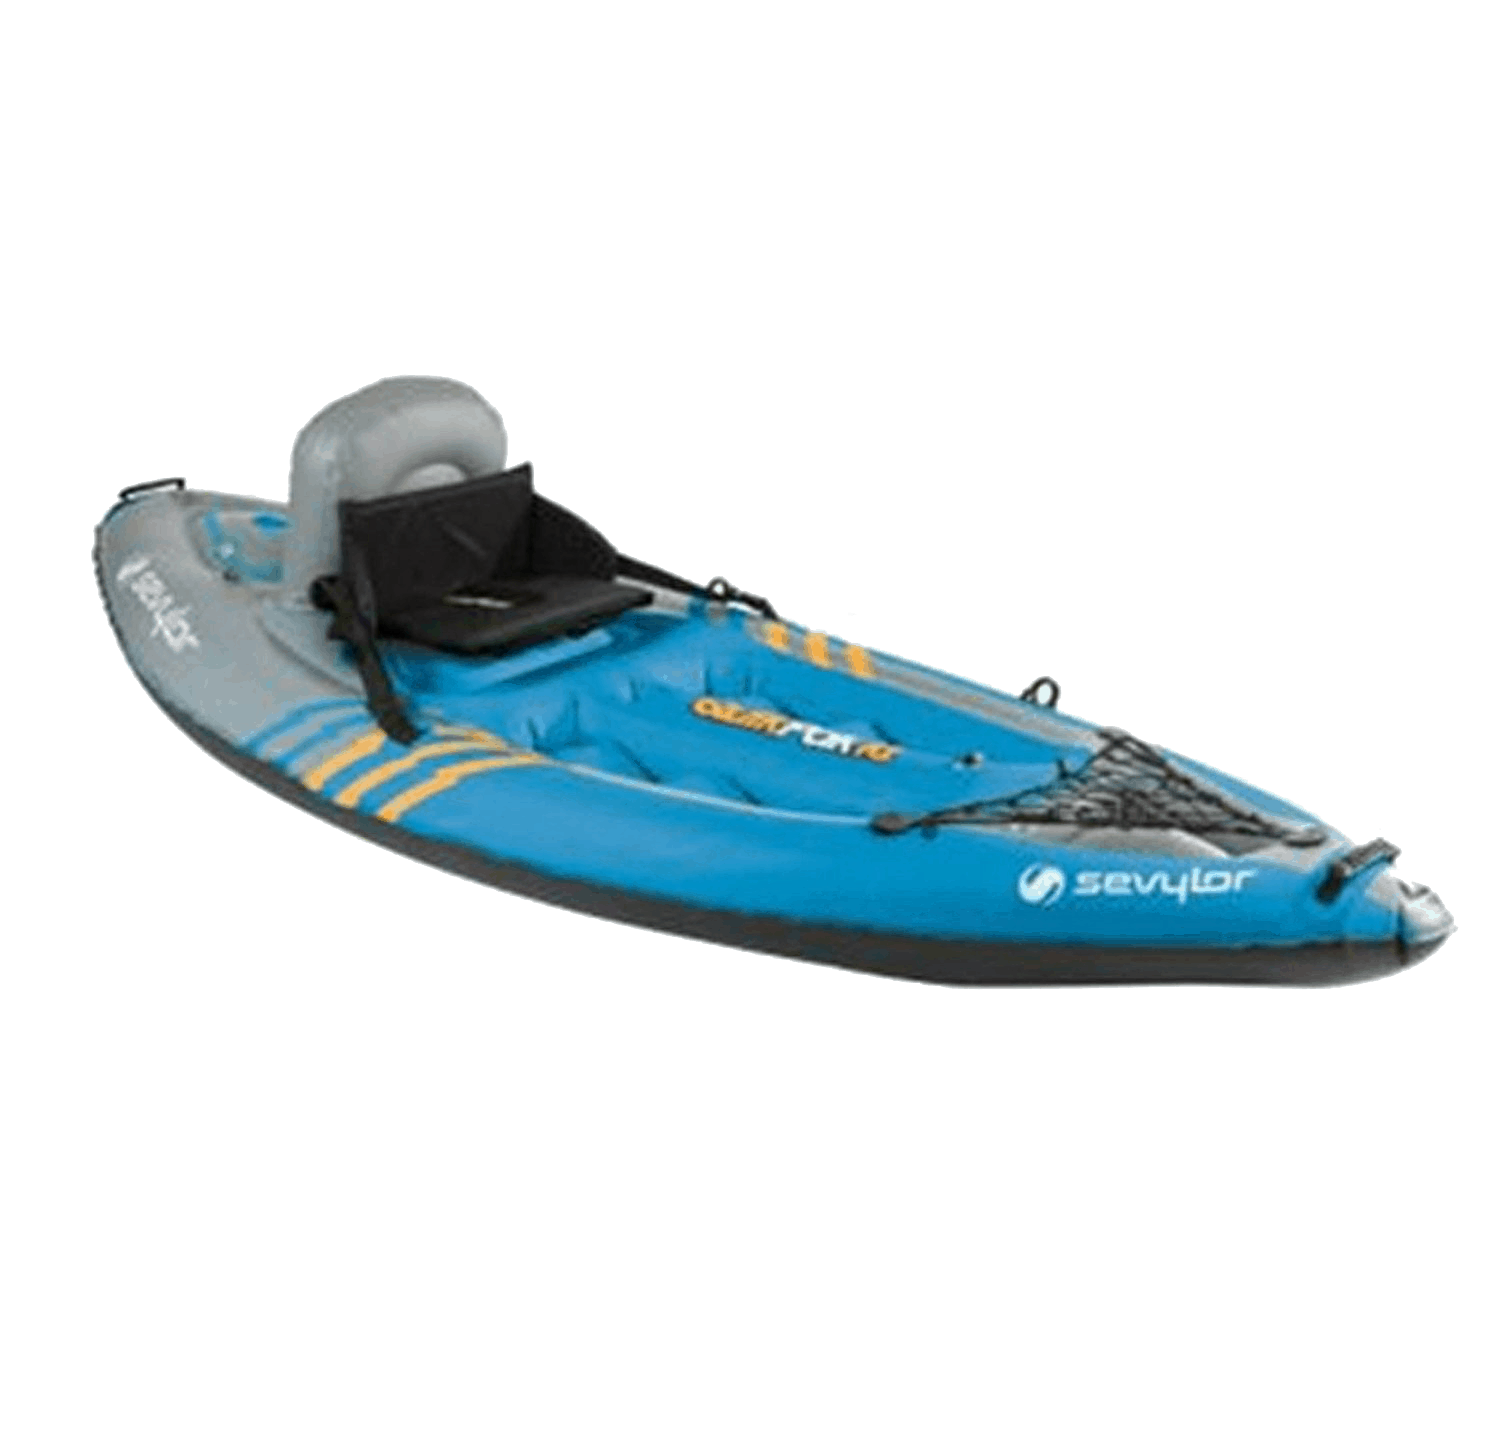 Sevylor QuickPak Top 5 Recreational Kayak